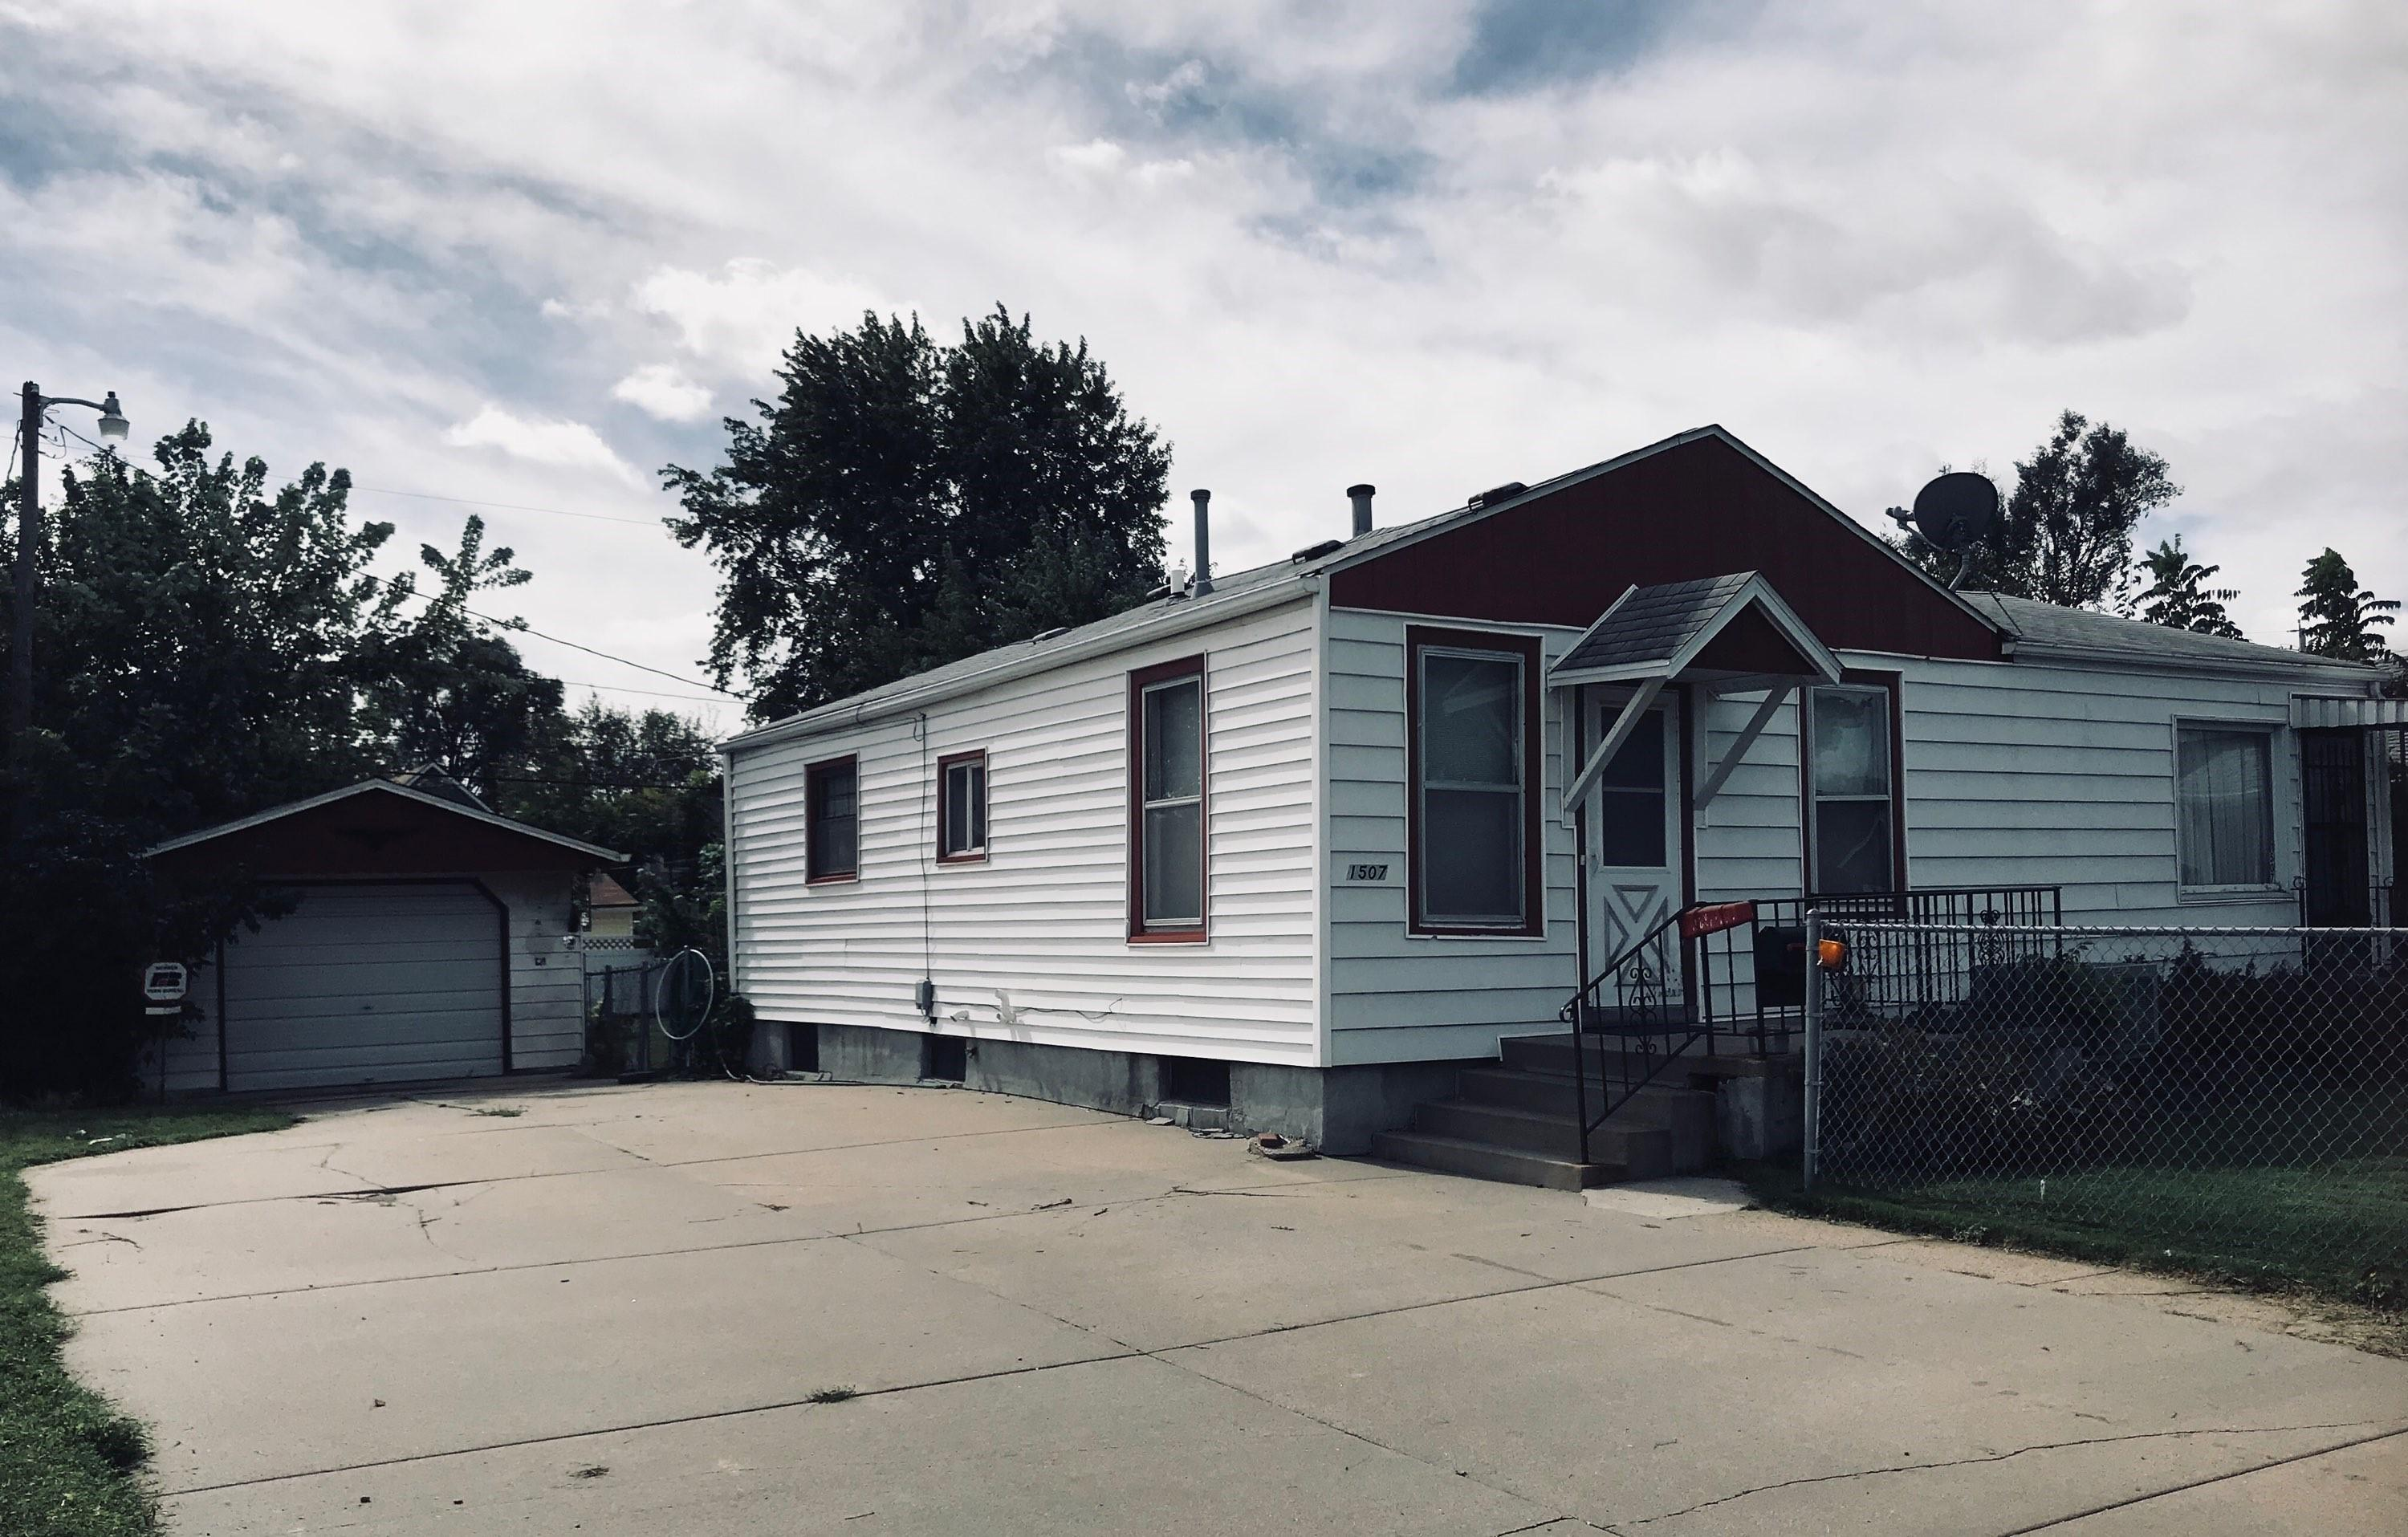 1507 5TH Avenue, Council Bluffs, IA 51501